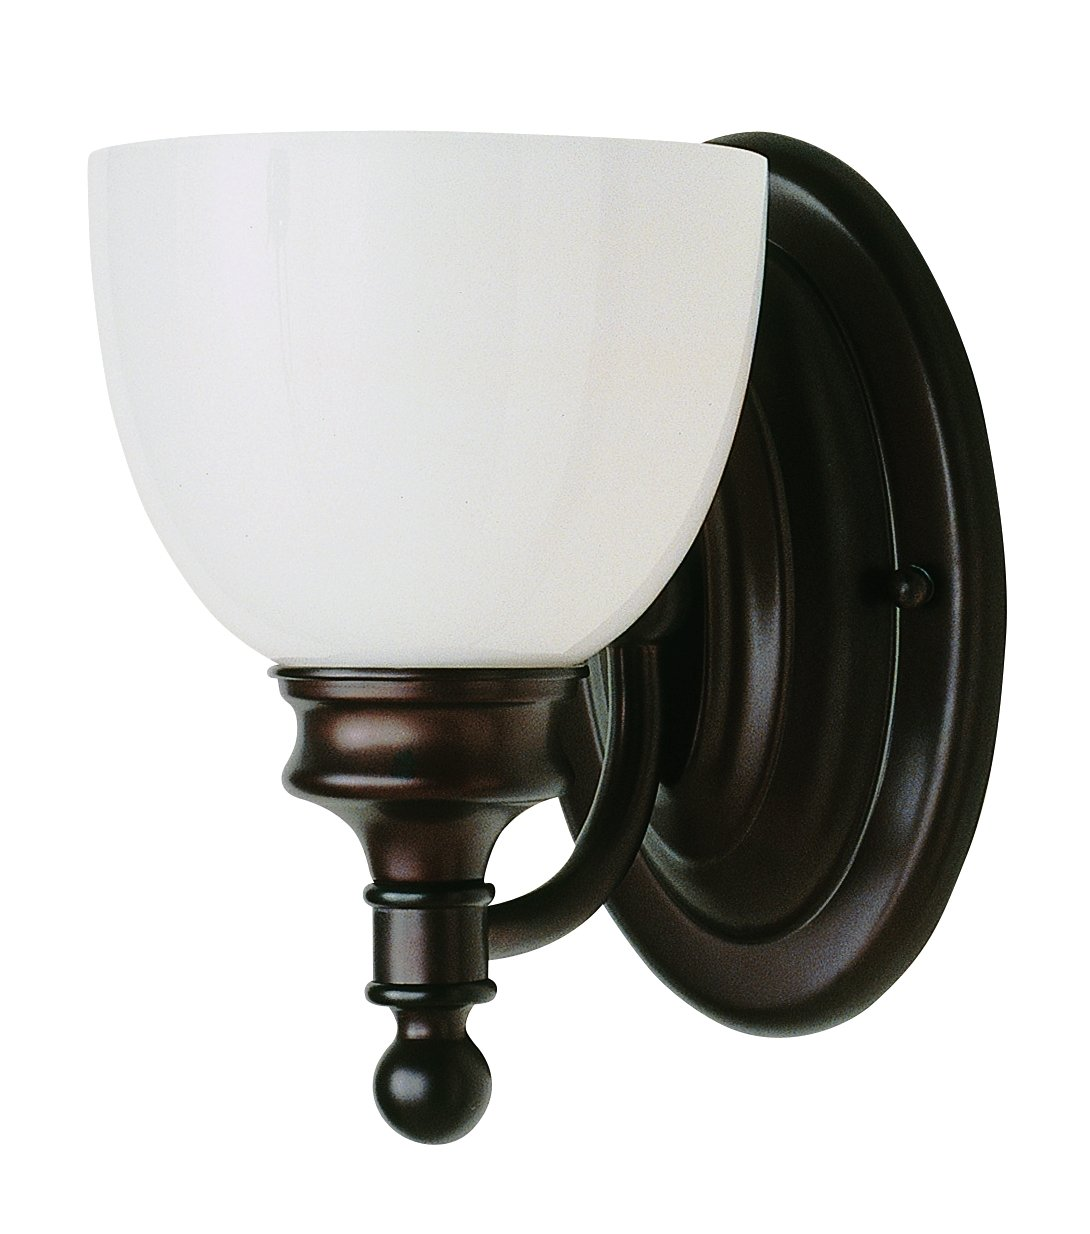 Trans Globe Lighting 34141 ROB Indoor Kovacs 6'' Wall Sconce, Rubbed Oil Bronze